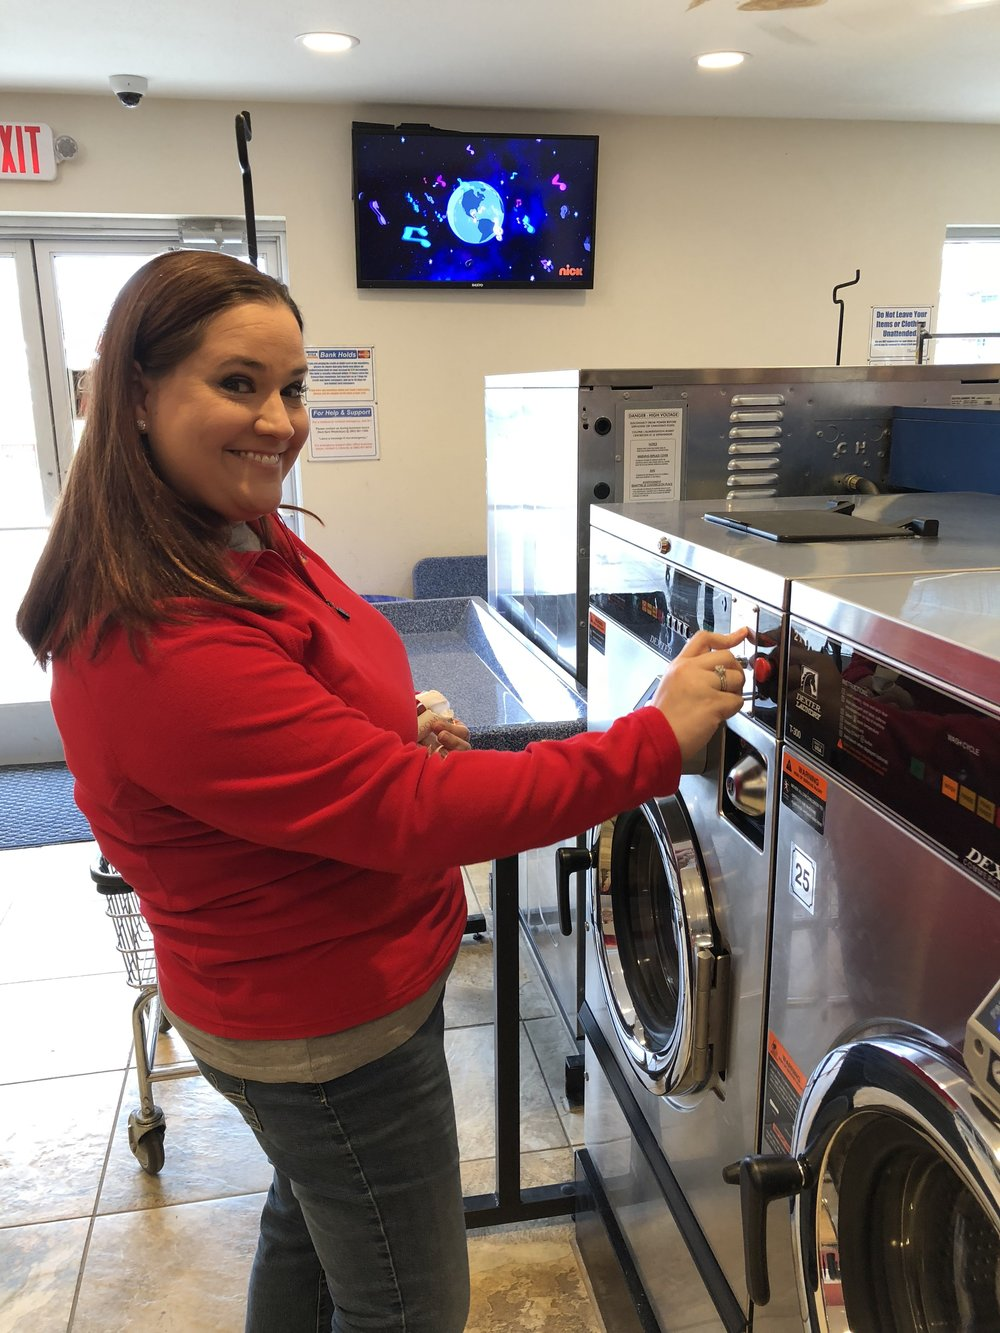 35 Random Acts of Kindness - Laundromat-Michelle-Barbra